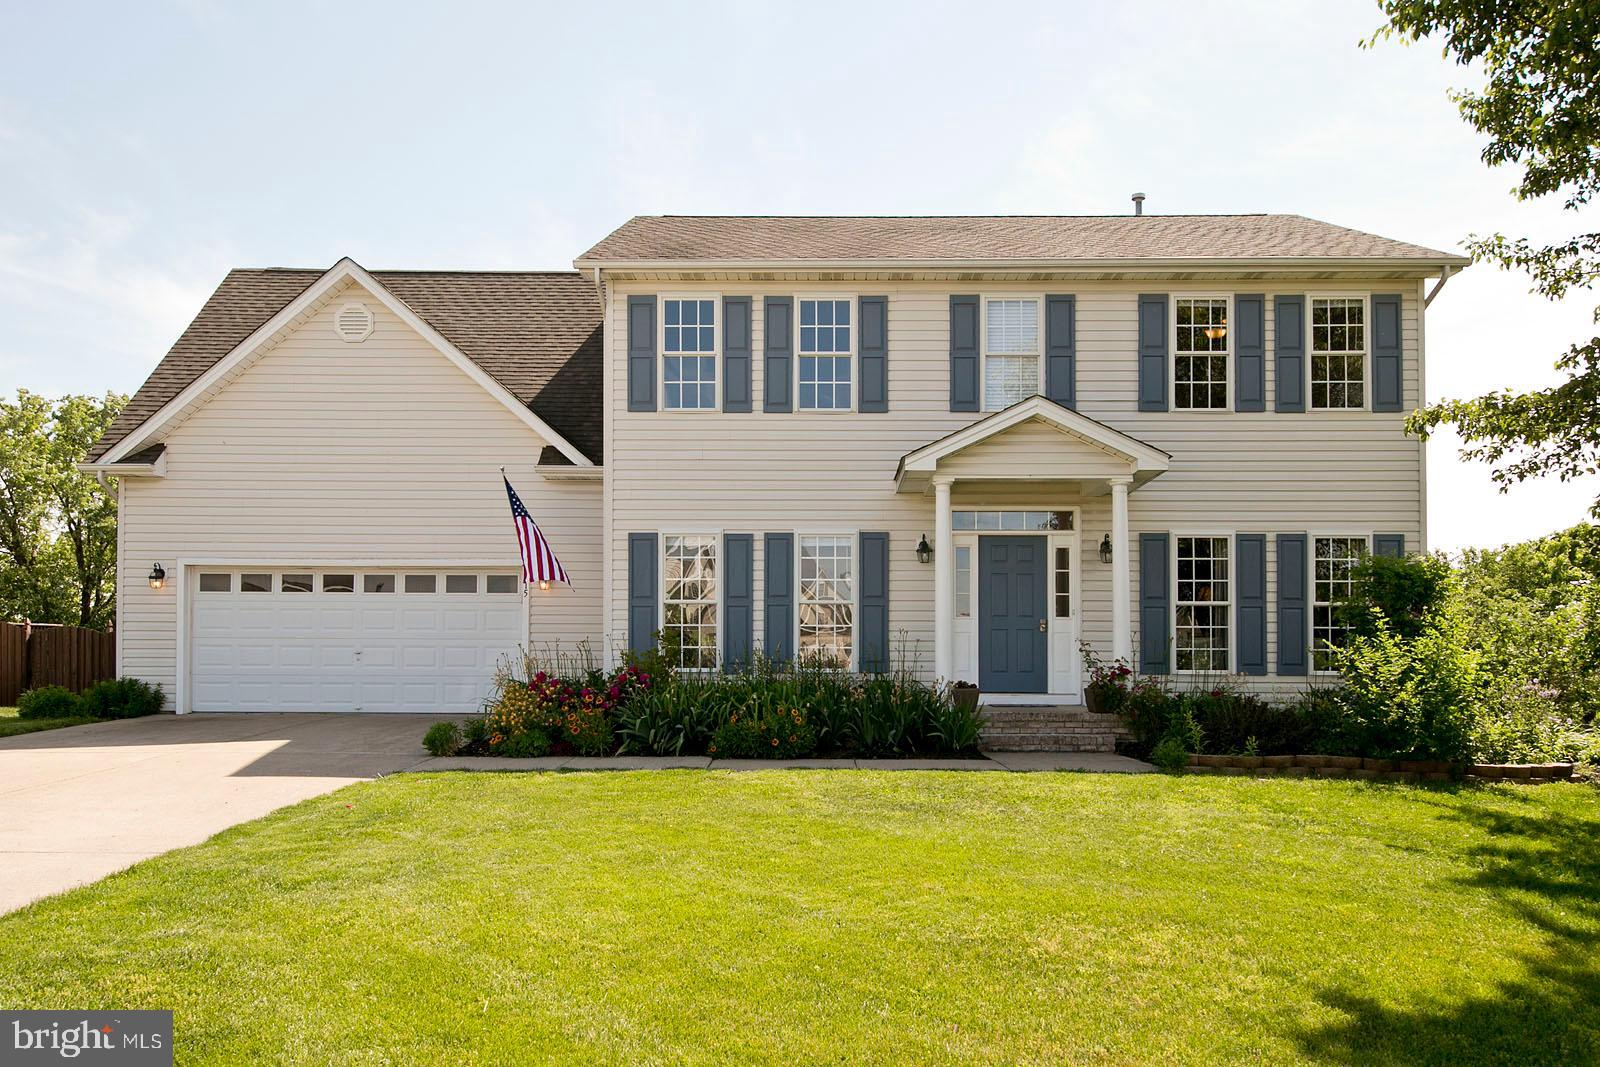 Gorgeous 4 bed, 4 bath, 3-level Colonial w/ 2,300+ sqft, 2-car garage & LOADED w/ upgrades including